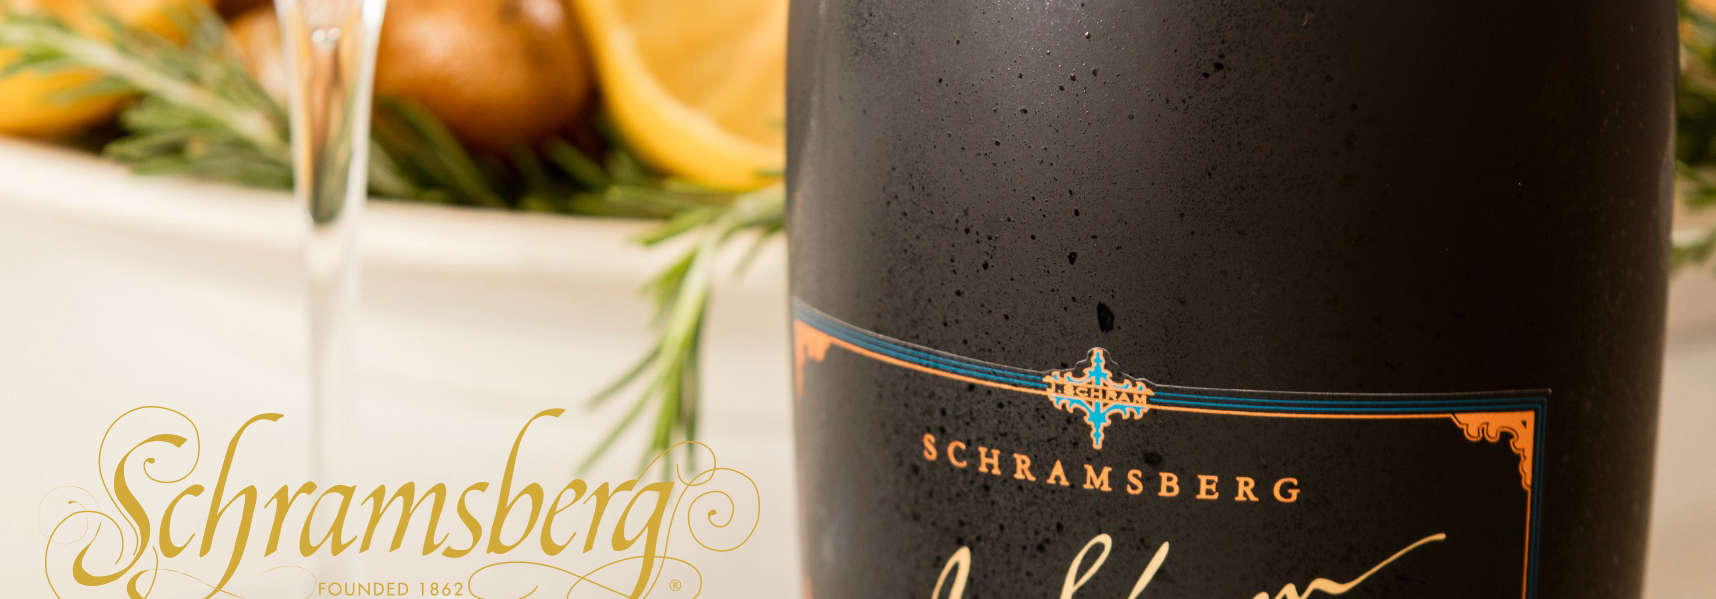 Dinner table with glass and bottle of J. Schram sparkling wine with lemon chicken